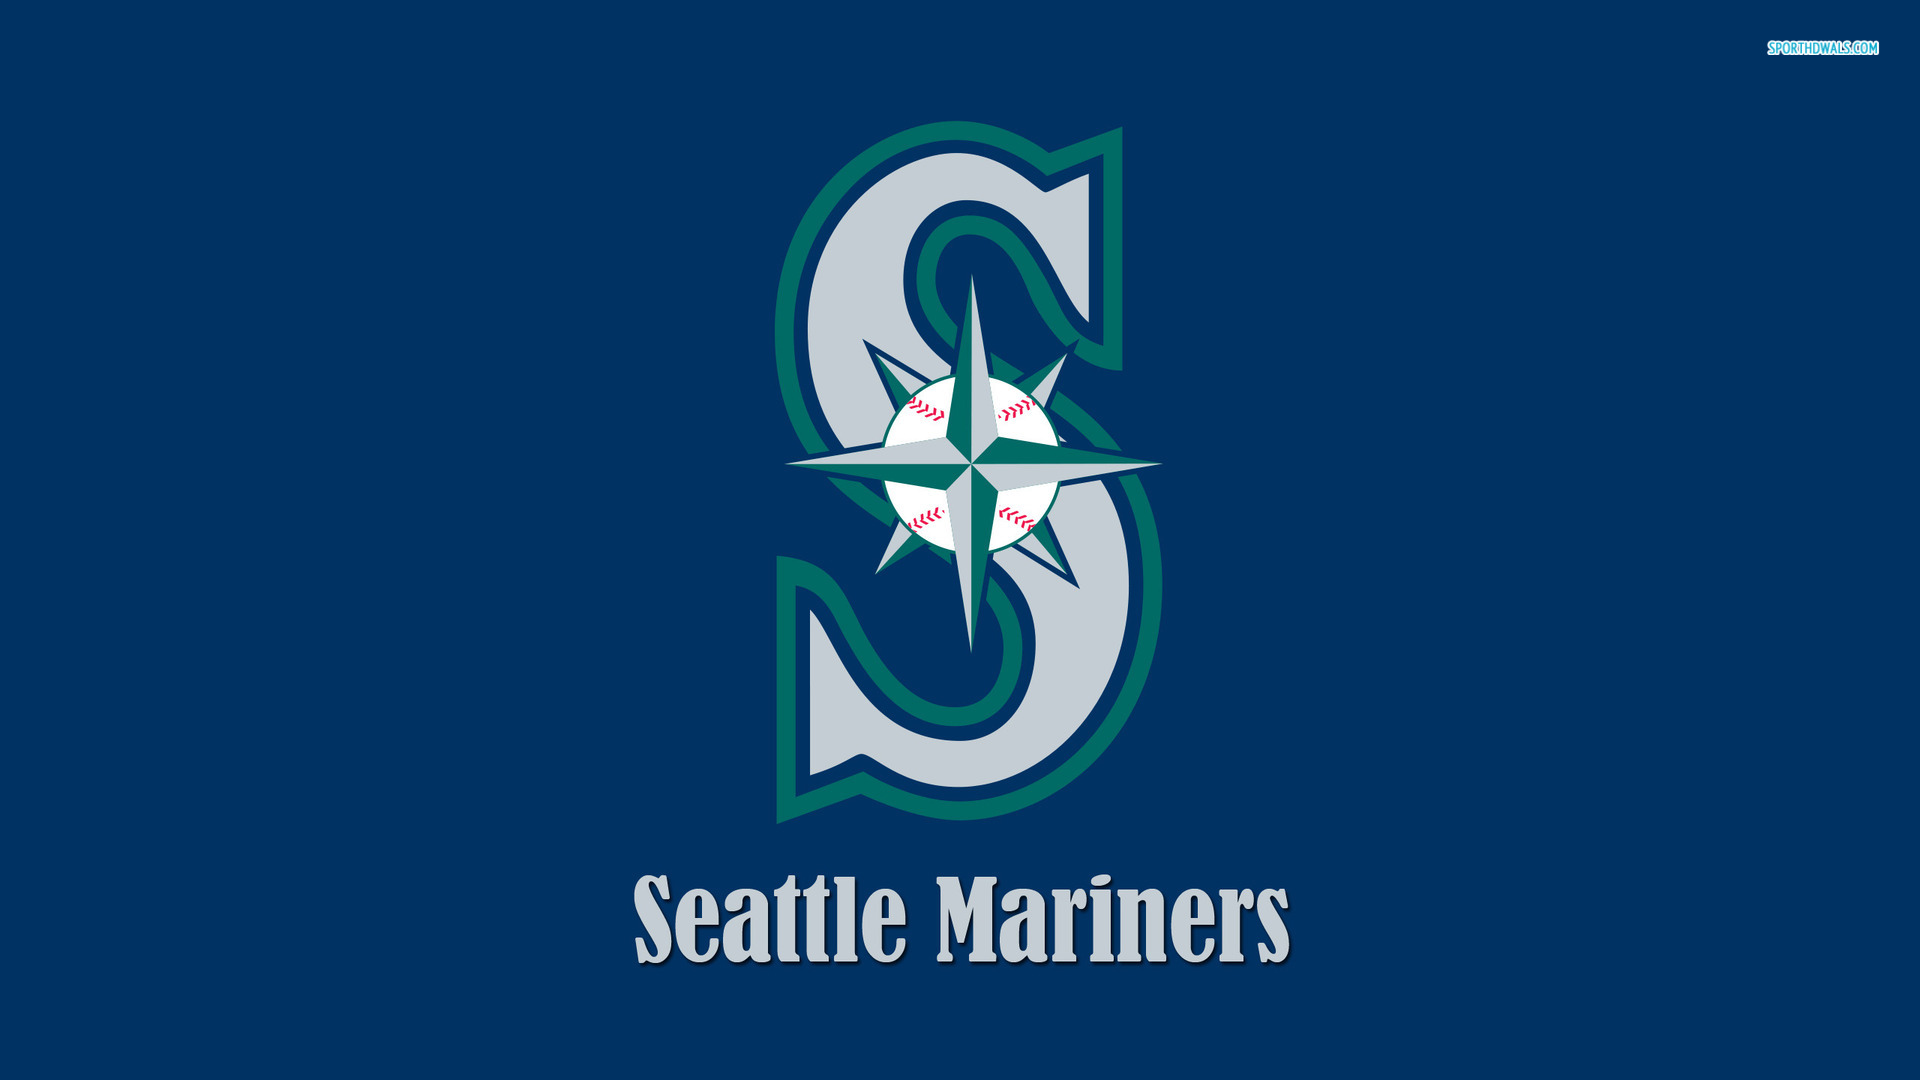 Seattle Mariners wallpaper 1920x1080 69575 1920x1080